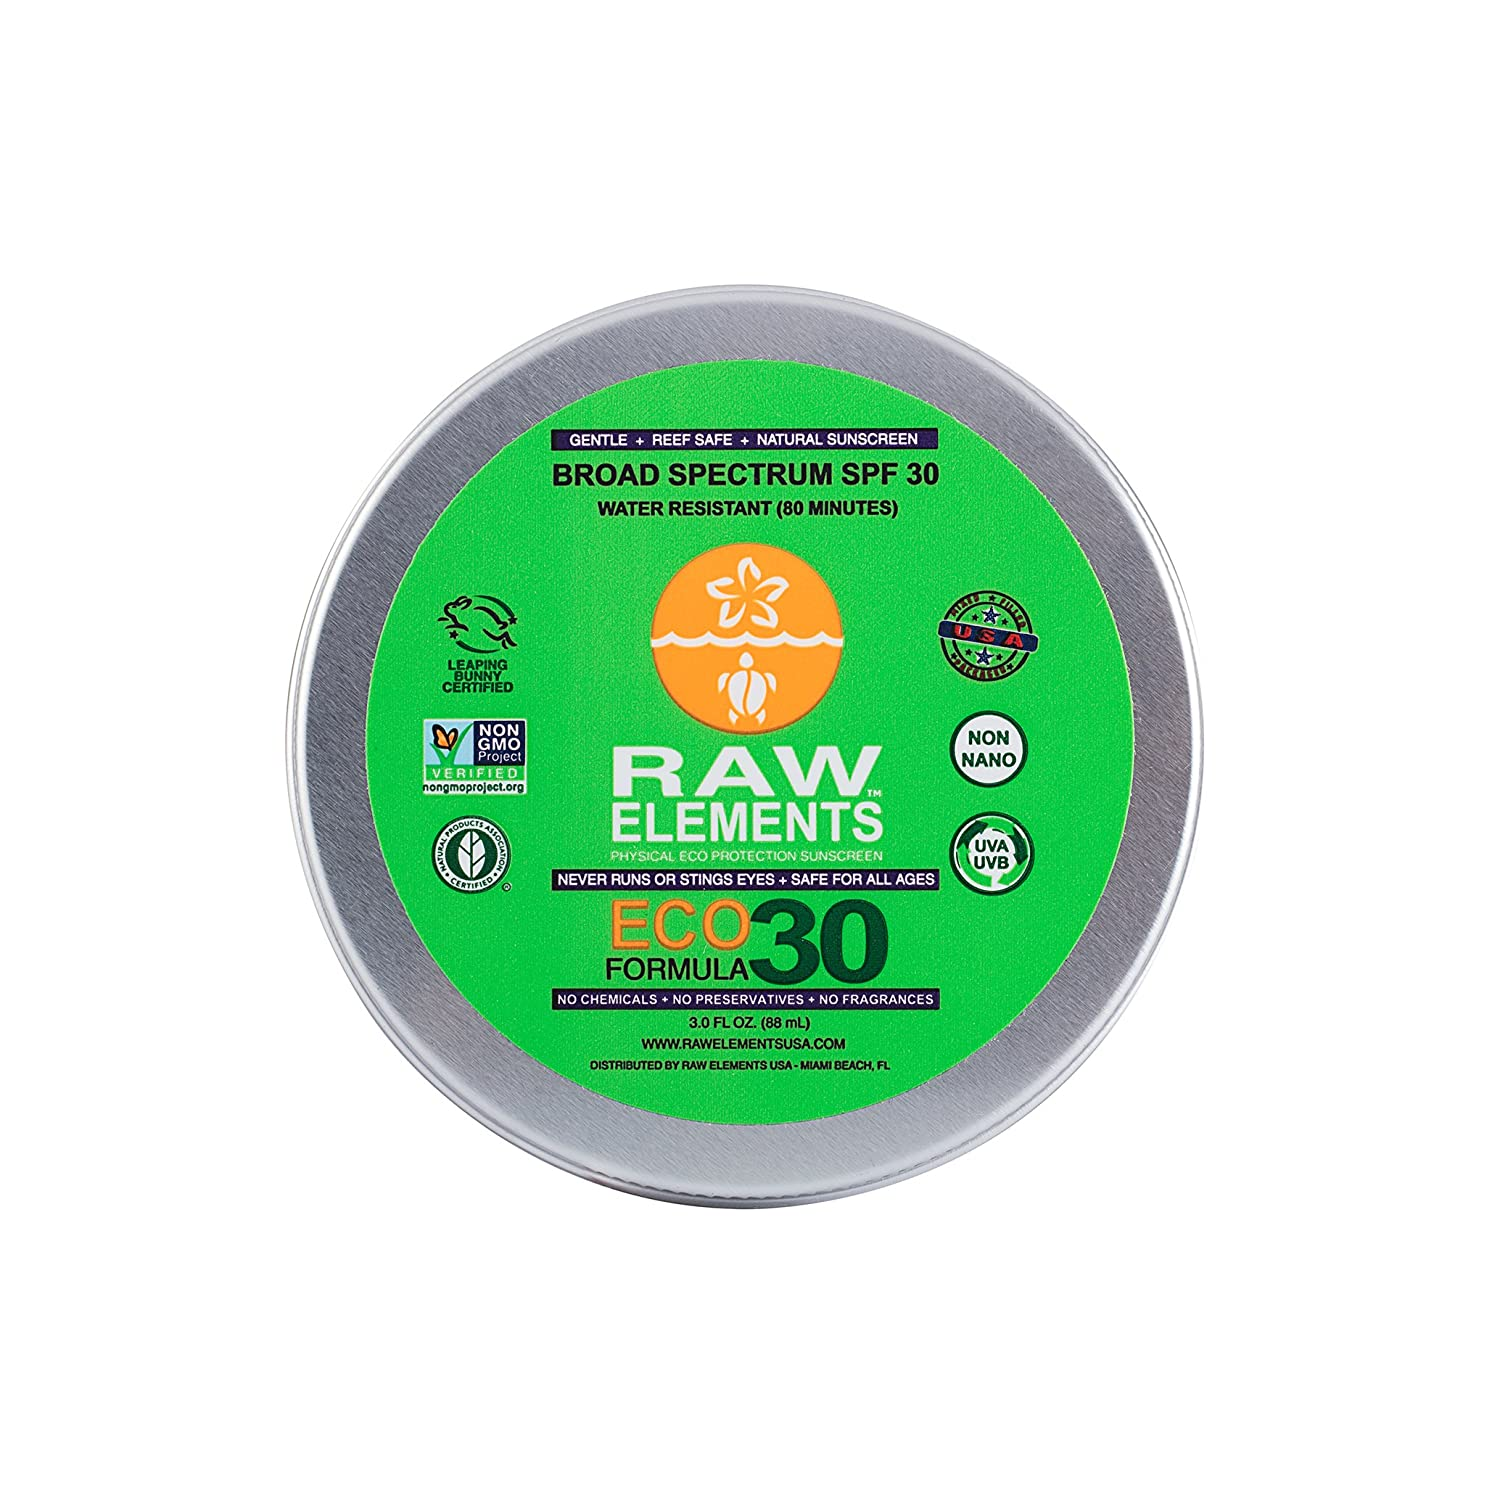 Raw Elements Face and Body Certified Natural Sunscreen | Non Nano Zinc Oxide 95% Organic, Very Water Resistant, Reef Safe, Non GMO, Cruelty Free, SPF 30 Reusable Tin 3oz (Packaging May Vary) RE0030LT